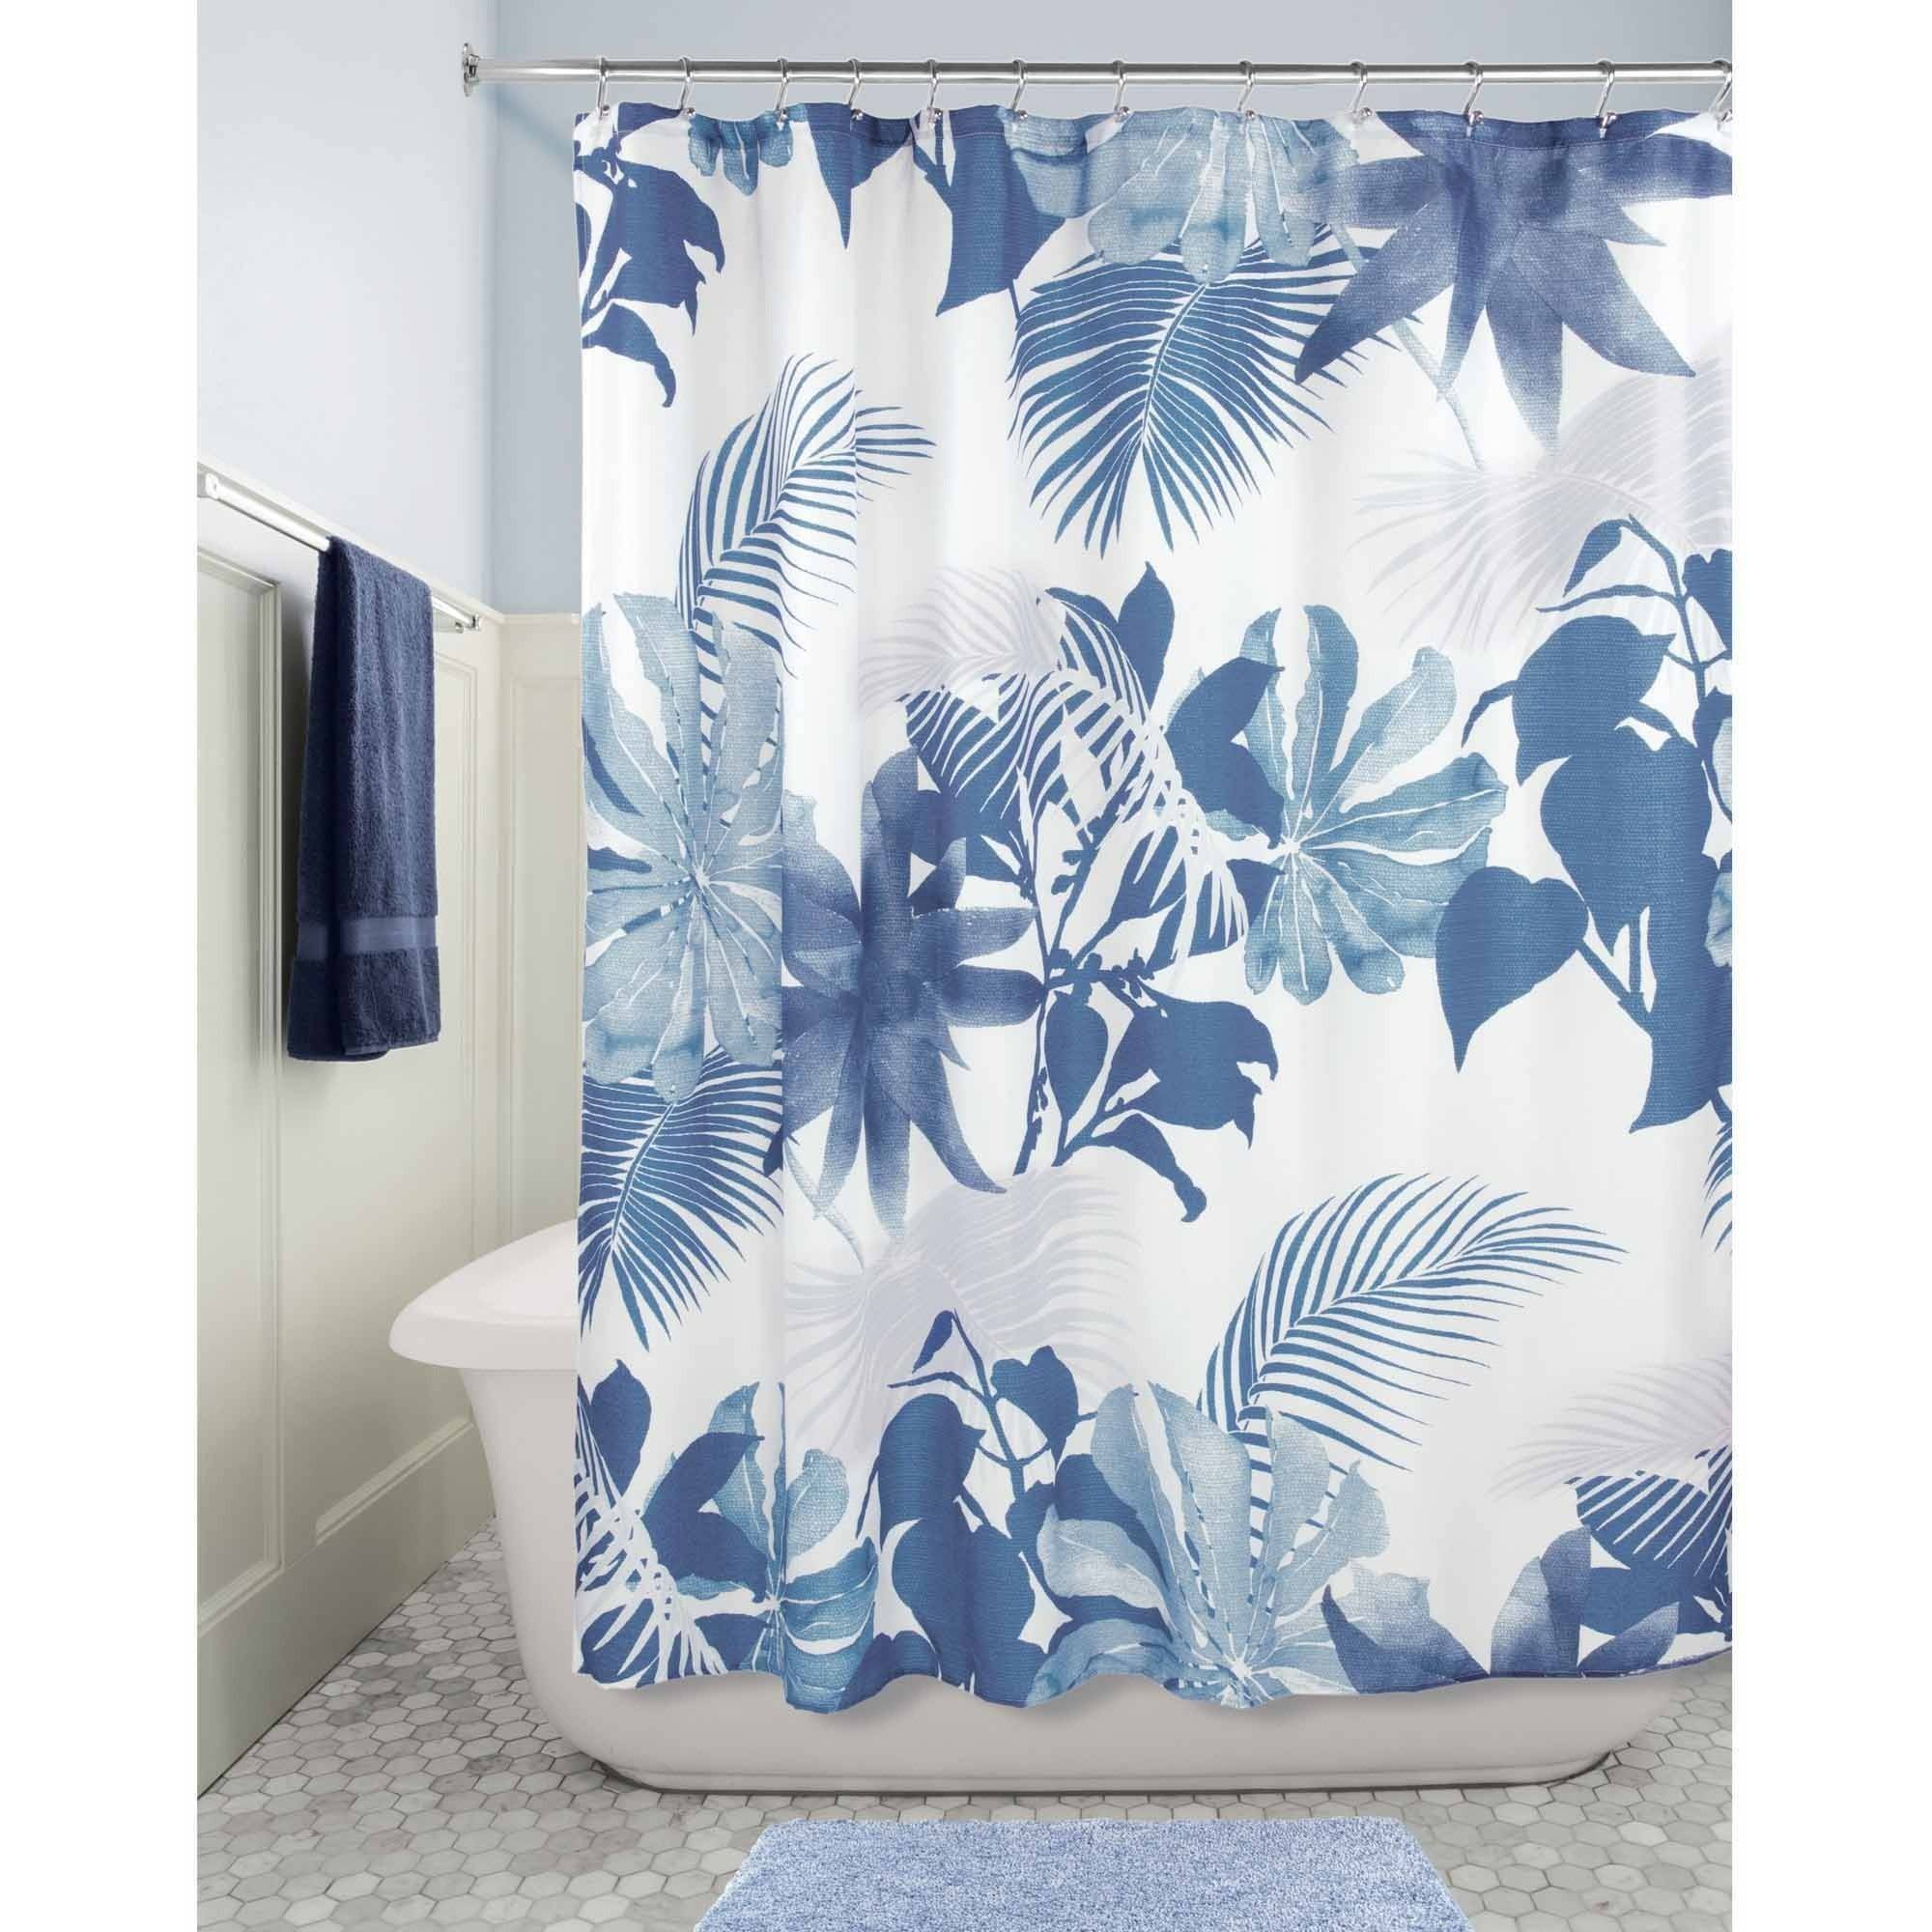 Interdesign Shower Curtains Interdesign Shower Curtain Liners with measurements 2000 X 2000